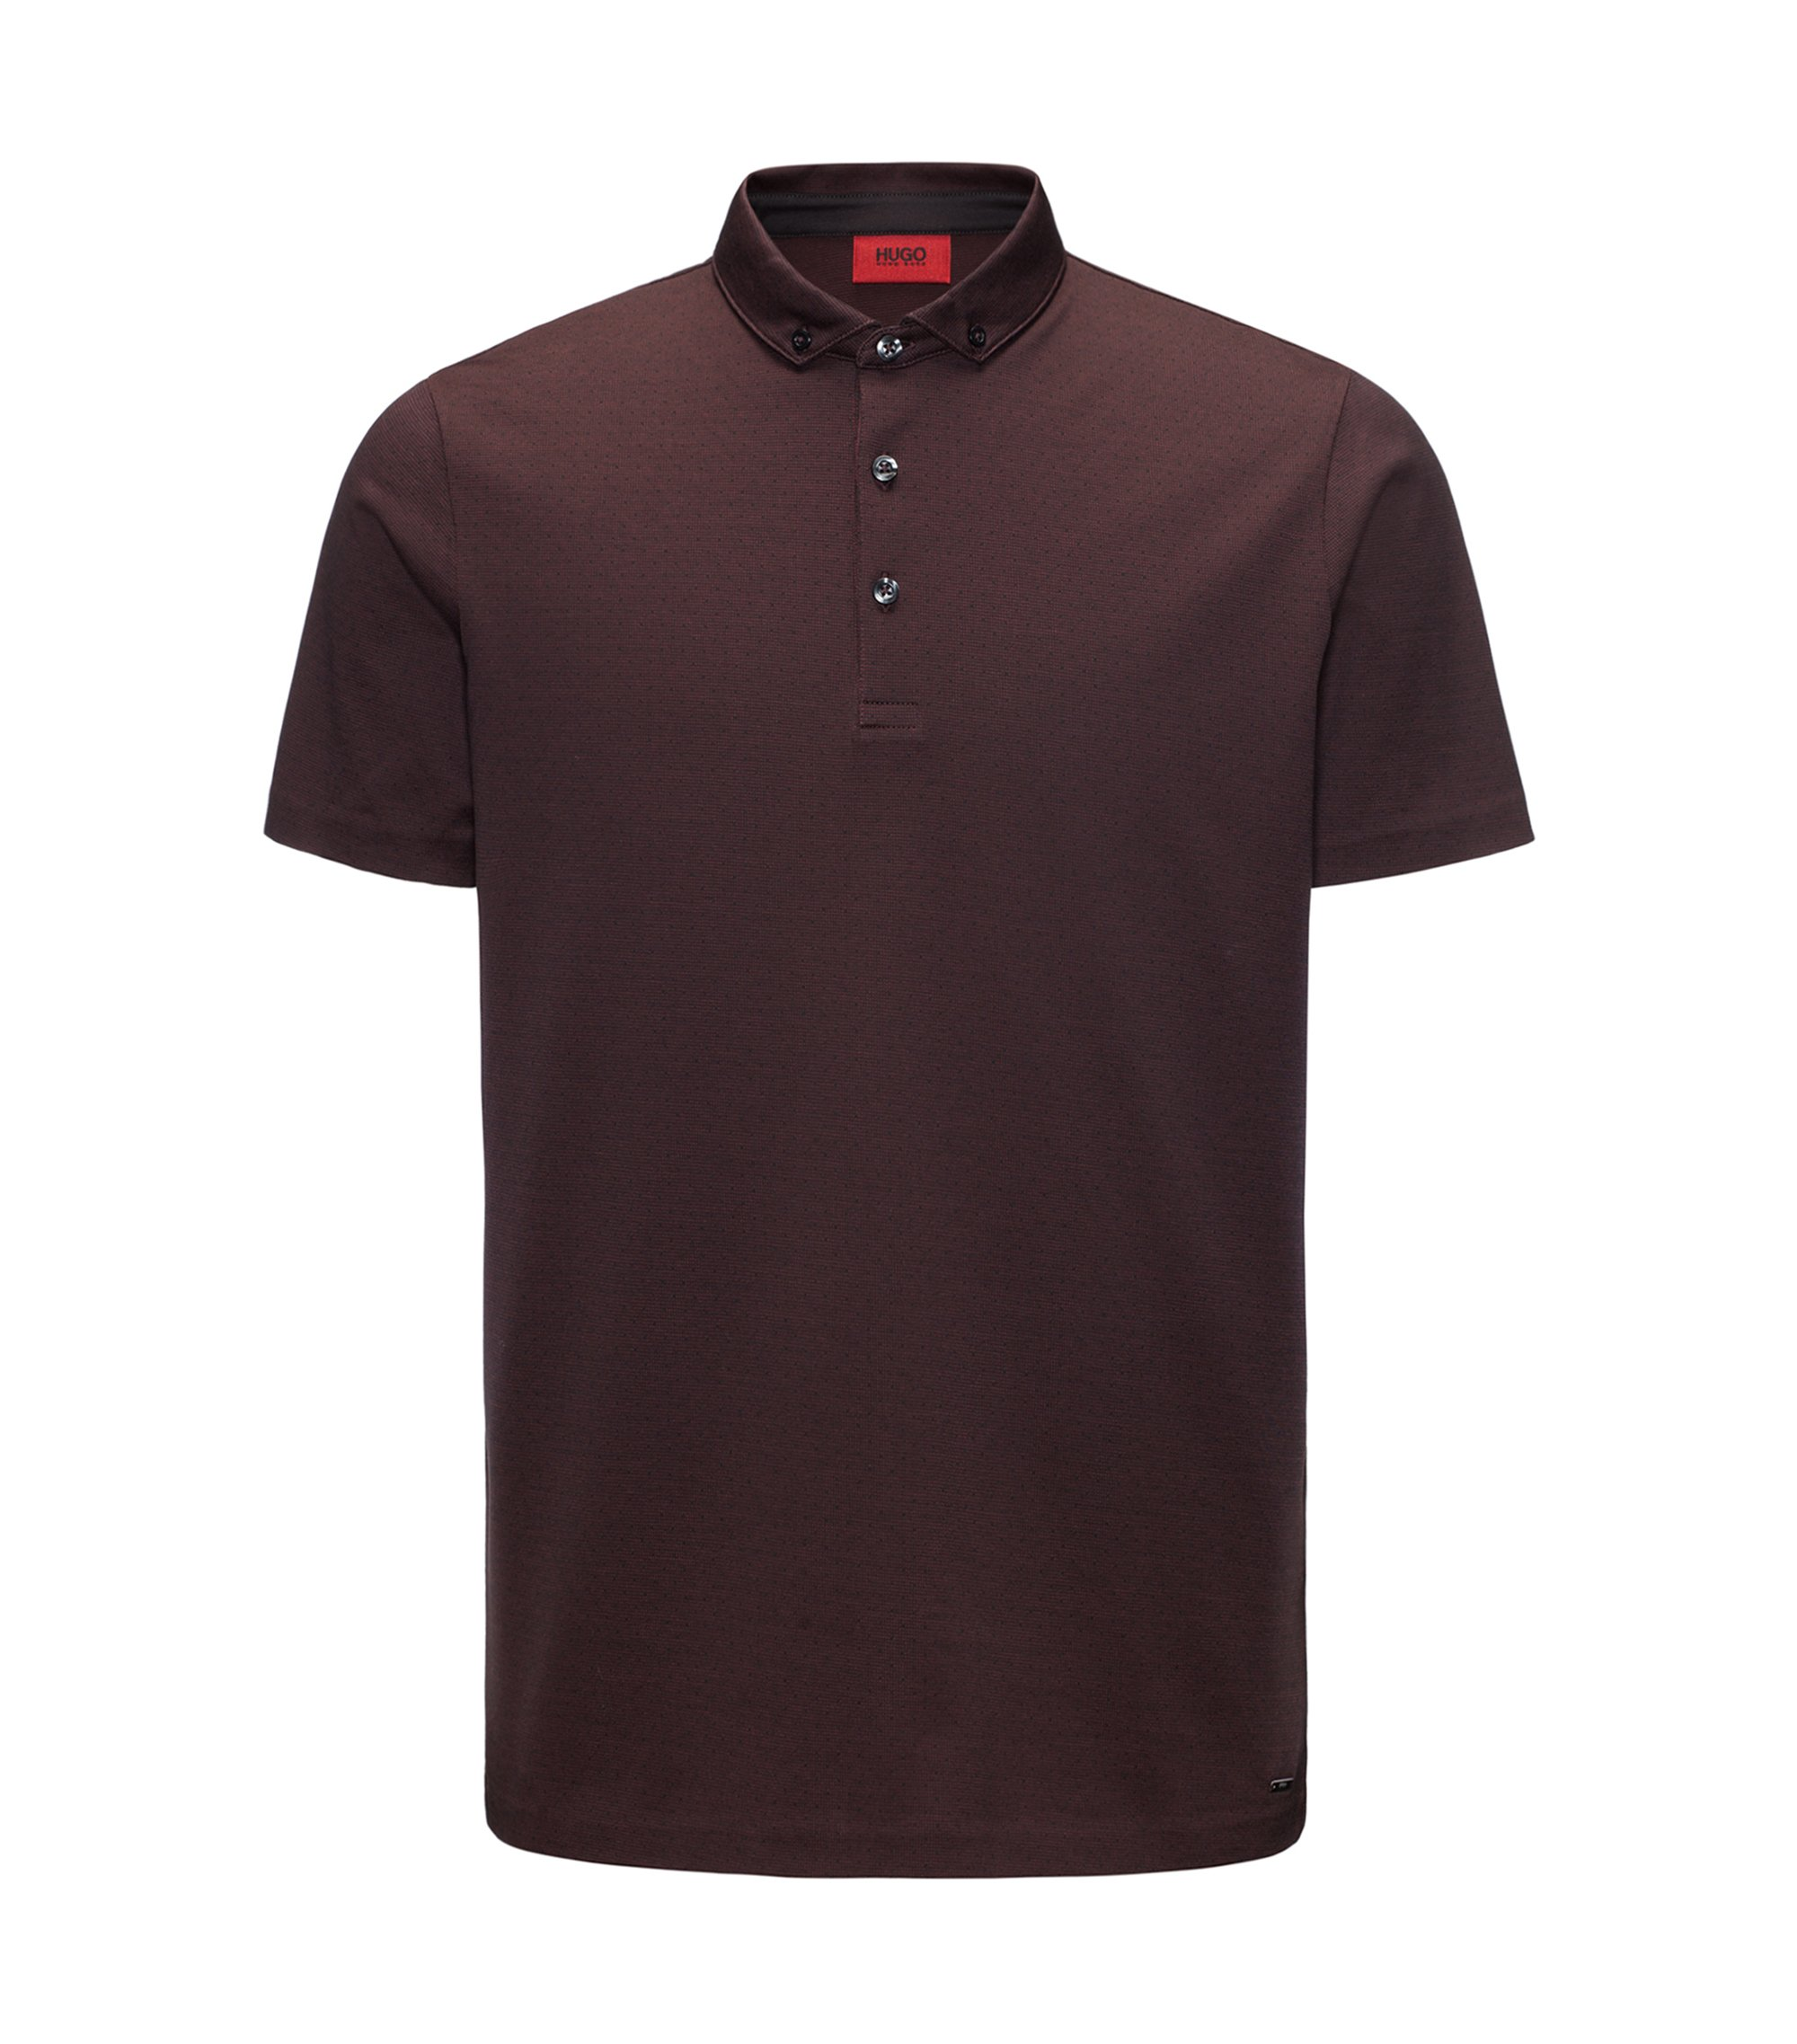 Jacquard Mercerized Cotton Polo Shirt, Regular Fit | Dogart, Dark Red